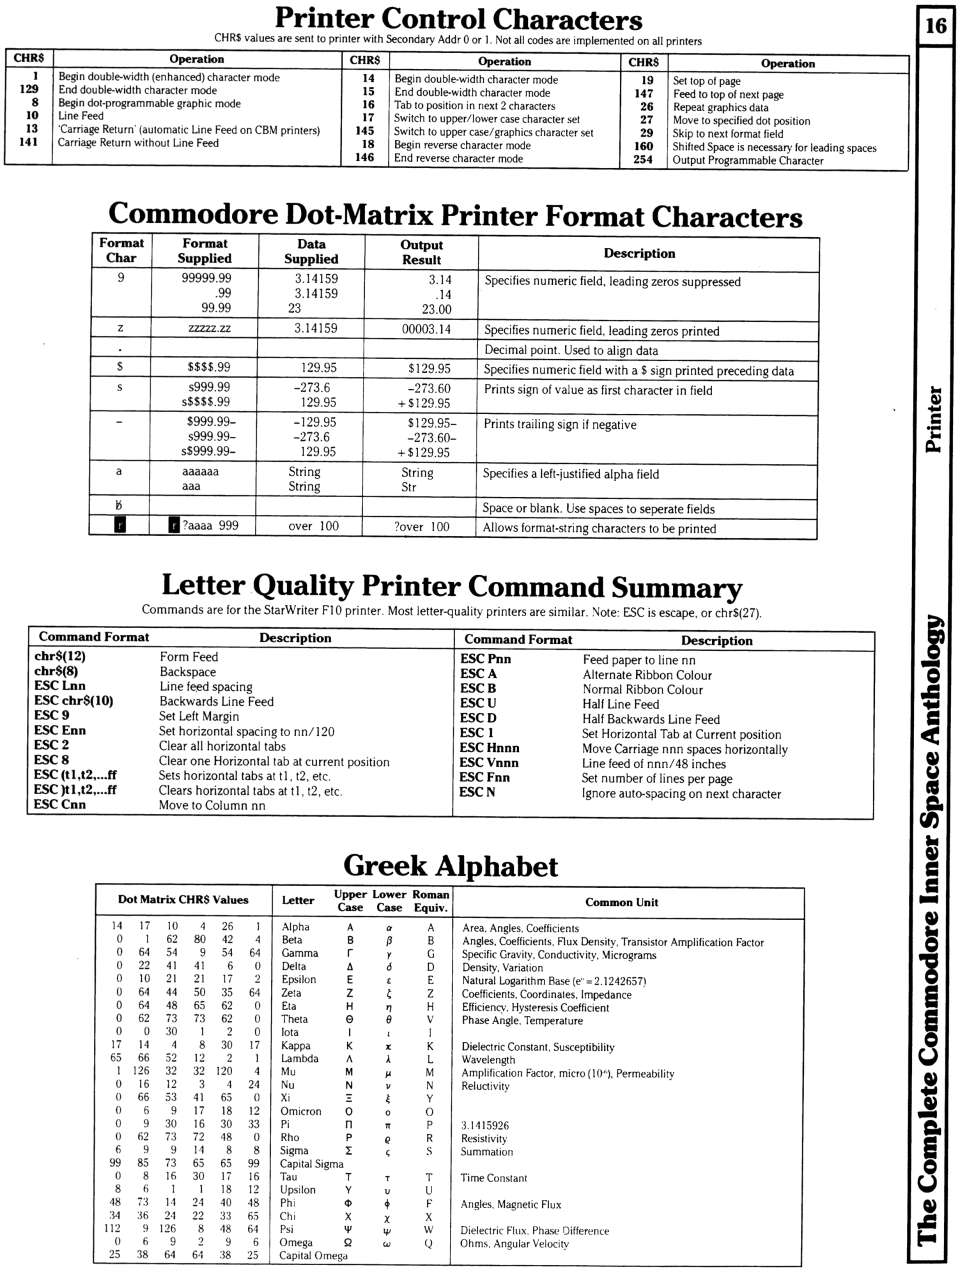 [960×1272 Printer Section: Matrix Printer Control Characters, Matrix Printer Format Characters, Letter Quality Printer Commands, Greek Alphabet Characters]